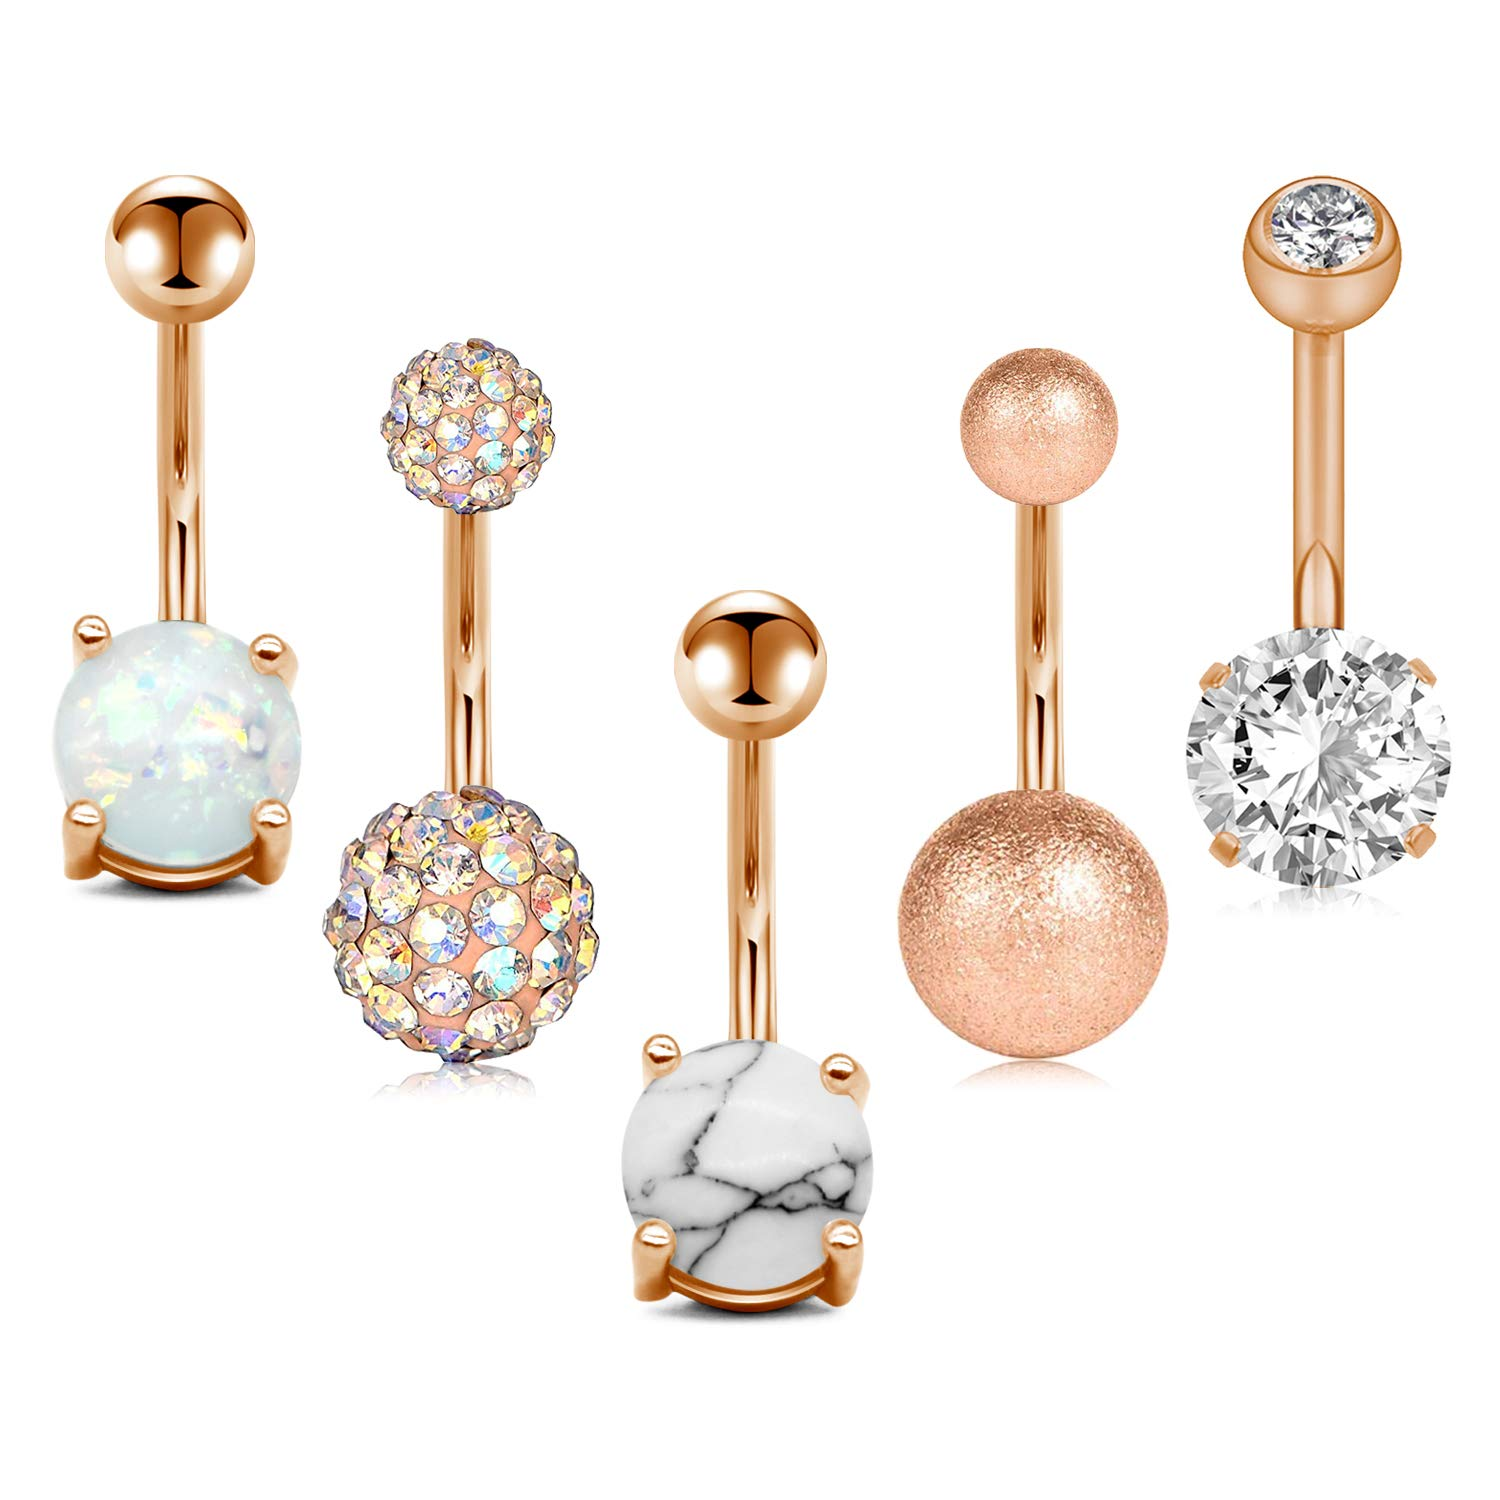 JFORYOU 5 Pcs Belly Button Rings Stainless Steel for Women Girls Navel Rings 5 Style 14G Navel Piercing Rose Gold Color Body Piercing Jewelry